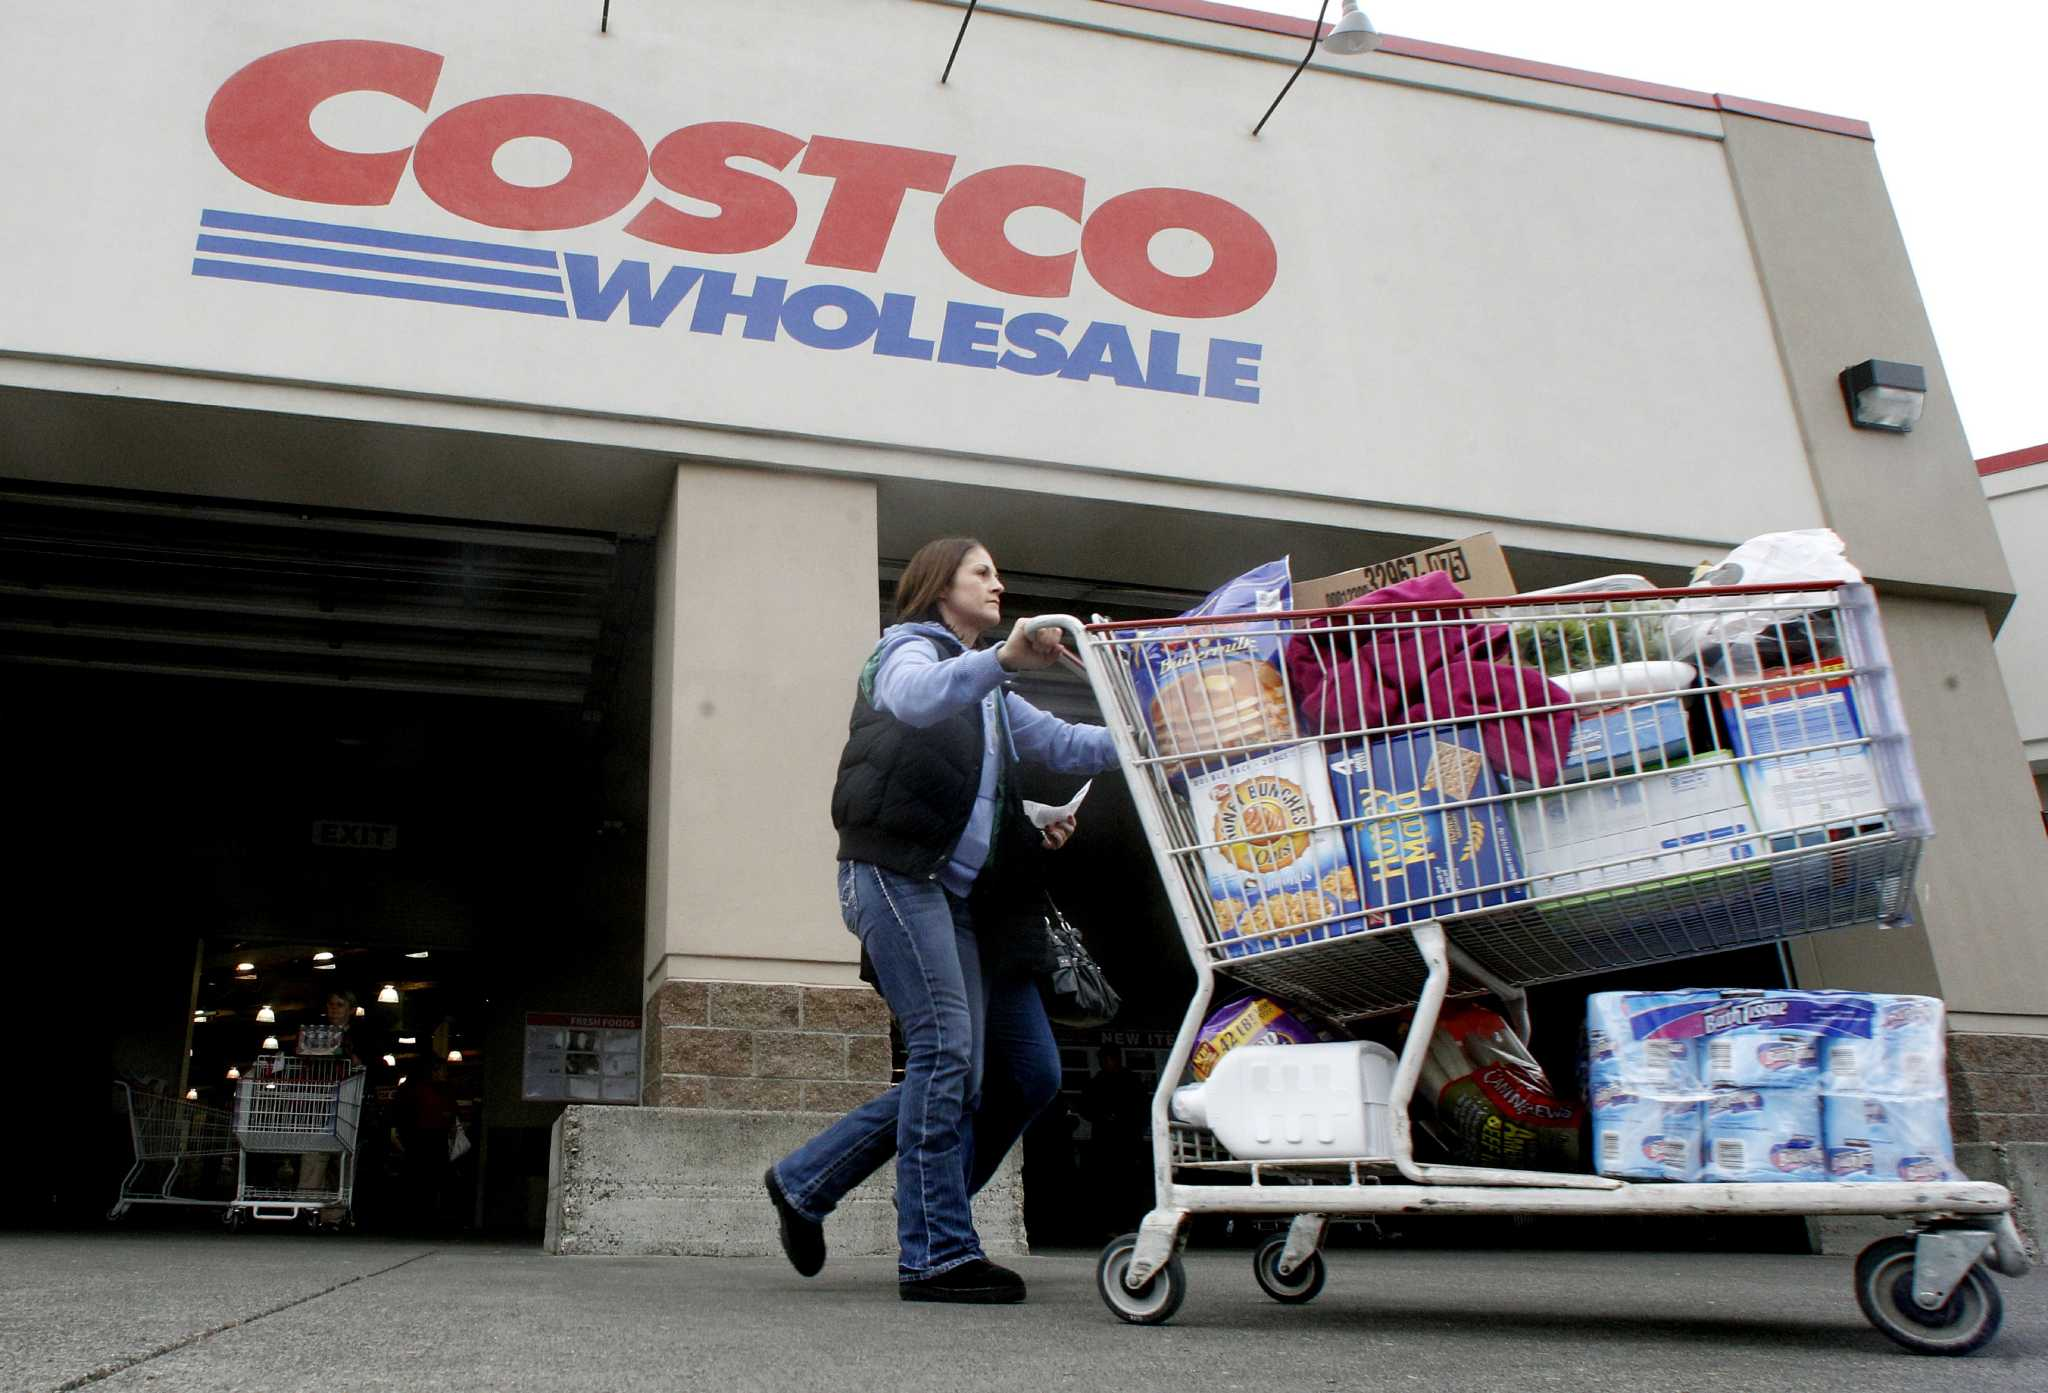 costco s transition to visa cards riddled problems houston costco s transition to visa cards riddled problems houston chronicle